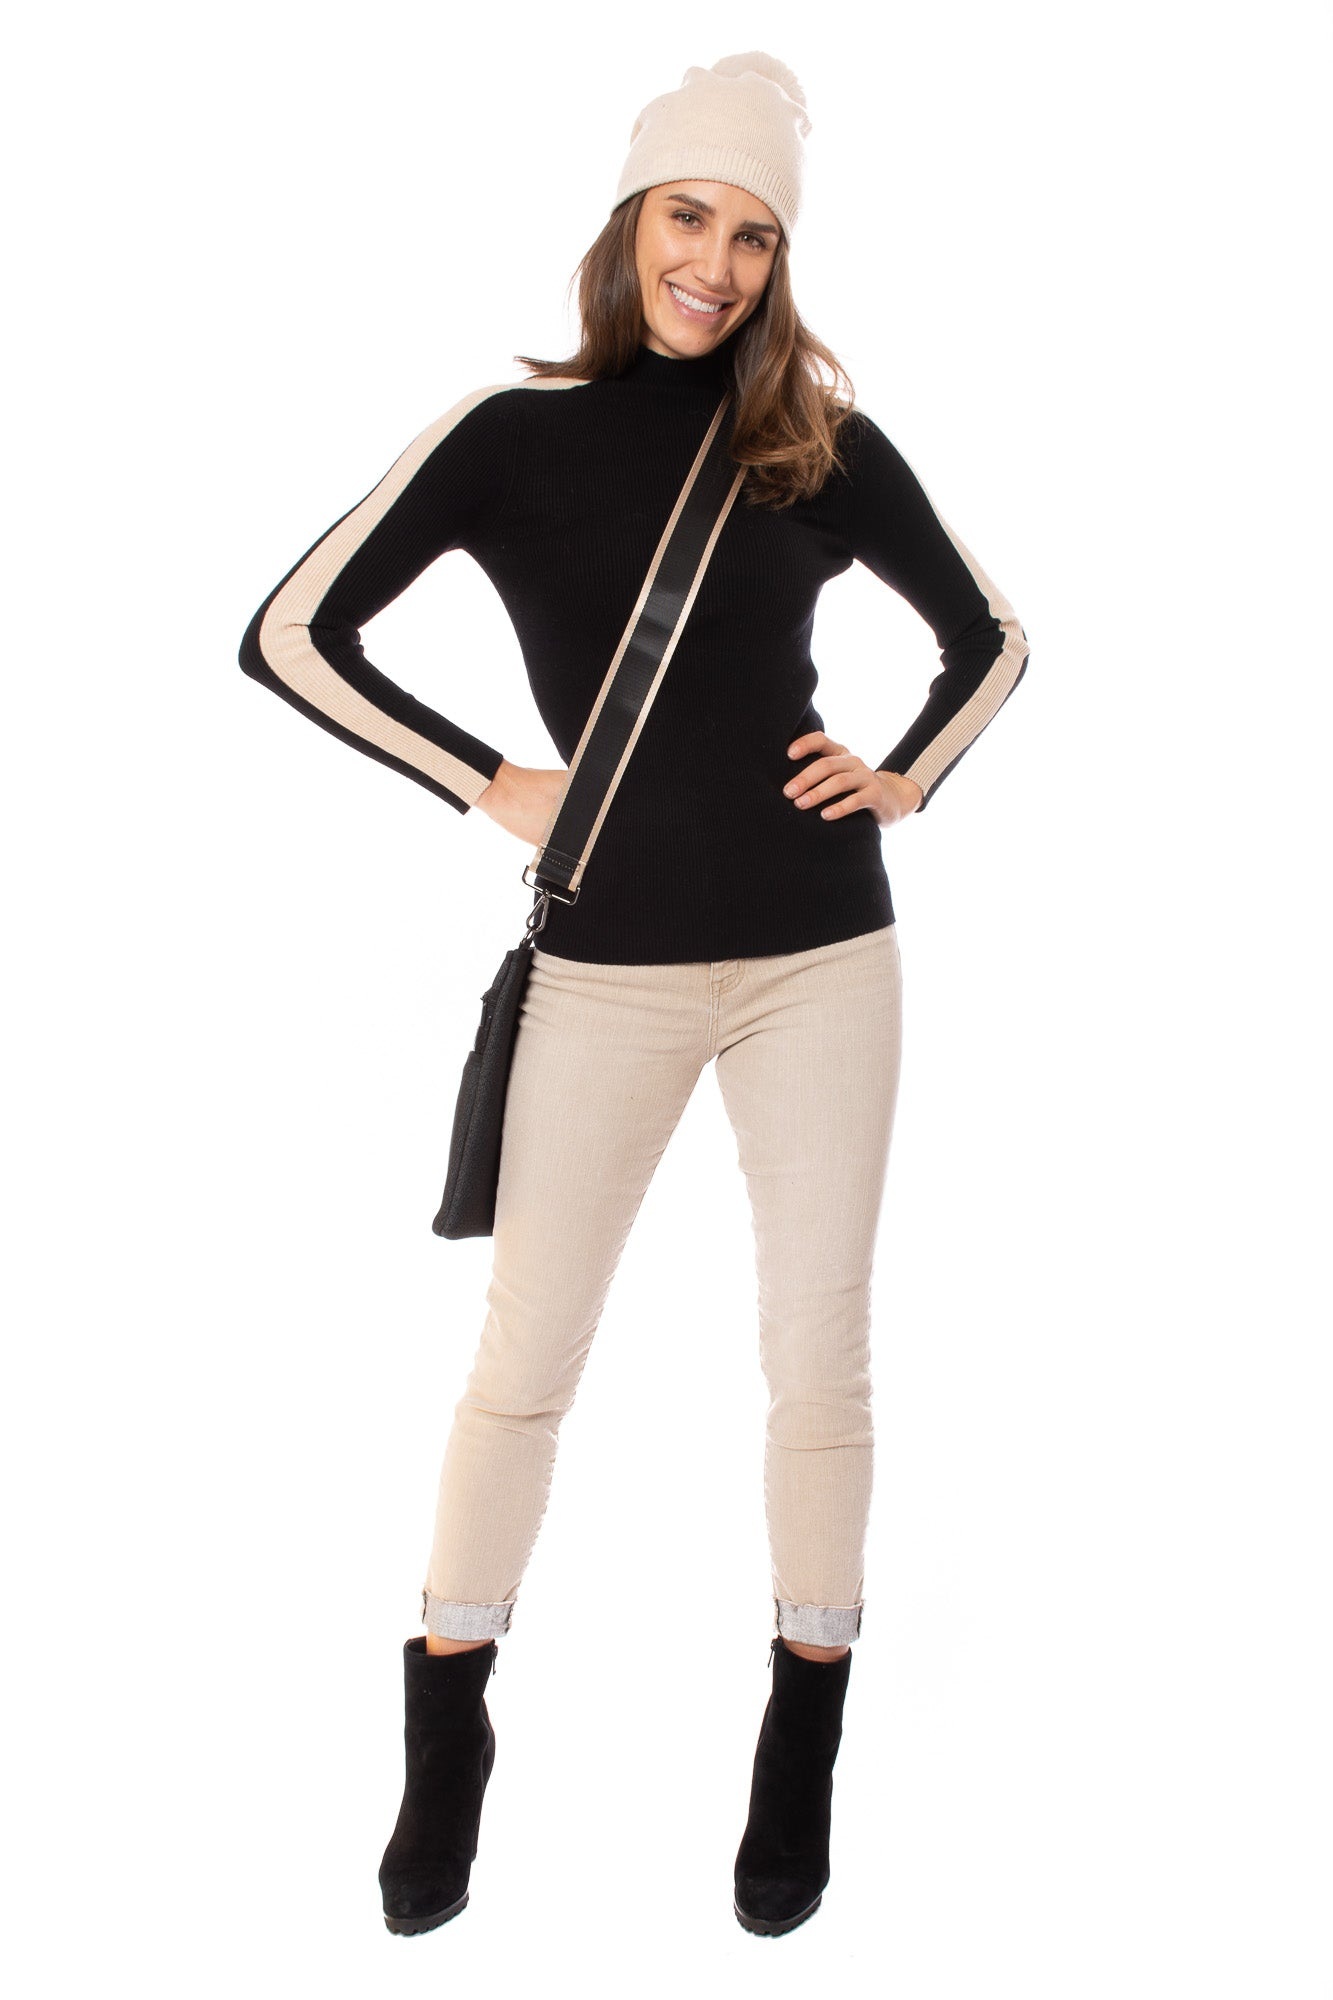 Kerisma - Frame Turtle Neck Sweater (G616, Black)